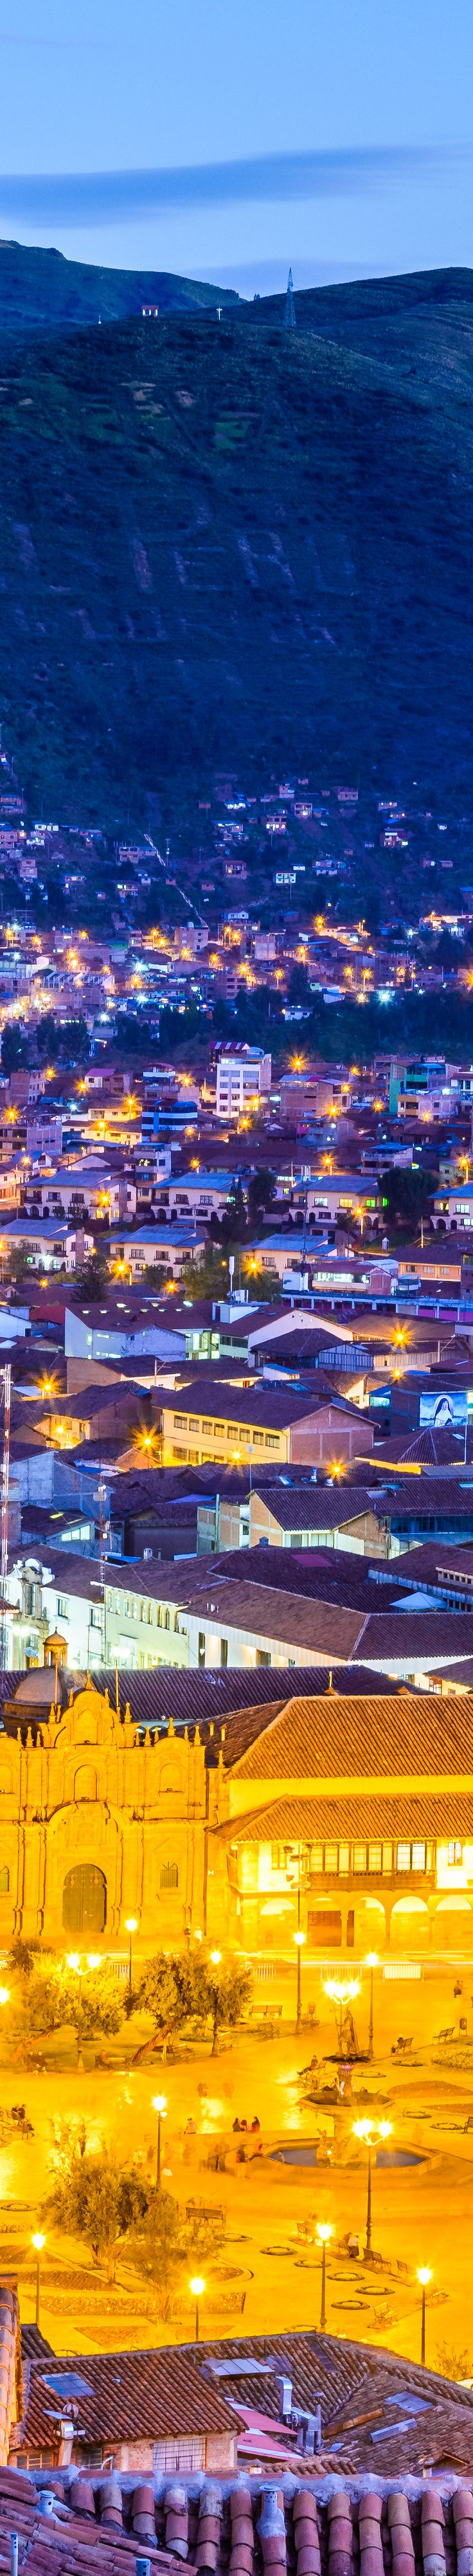 nighttime view of glowing city amidst mountains